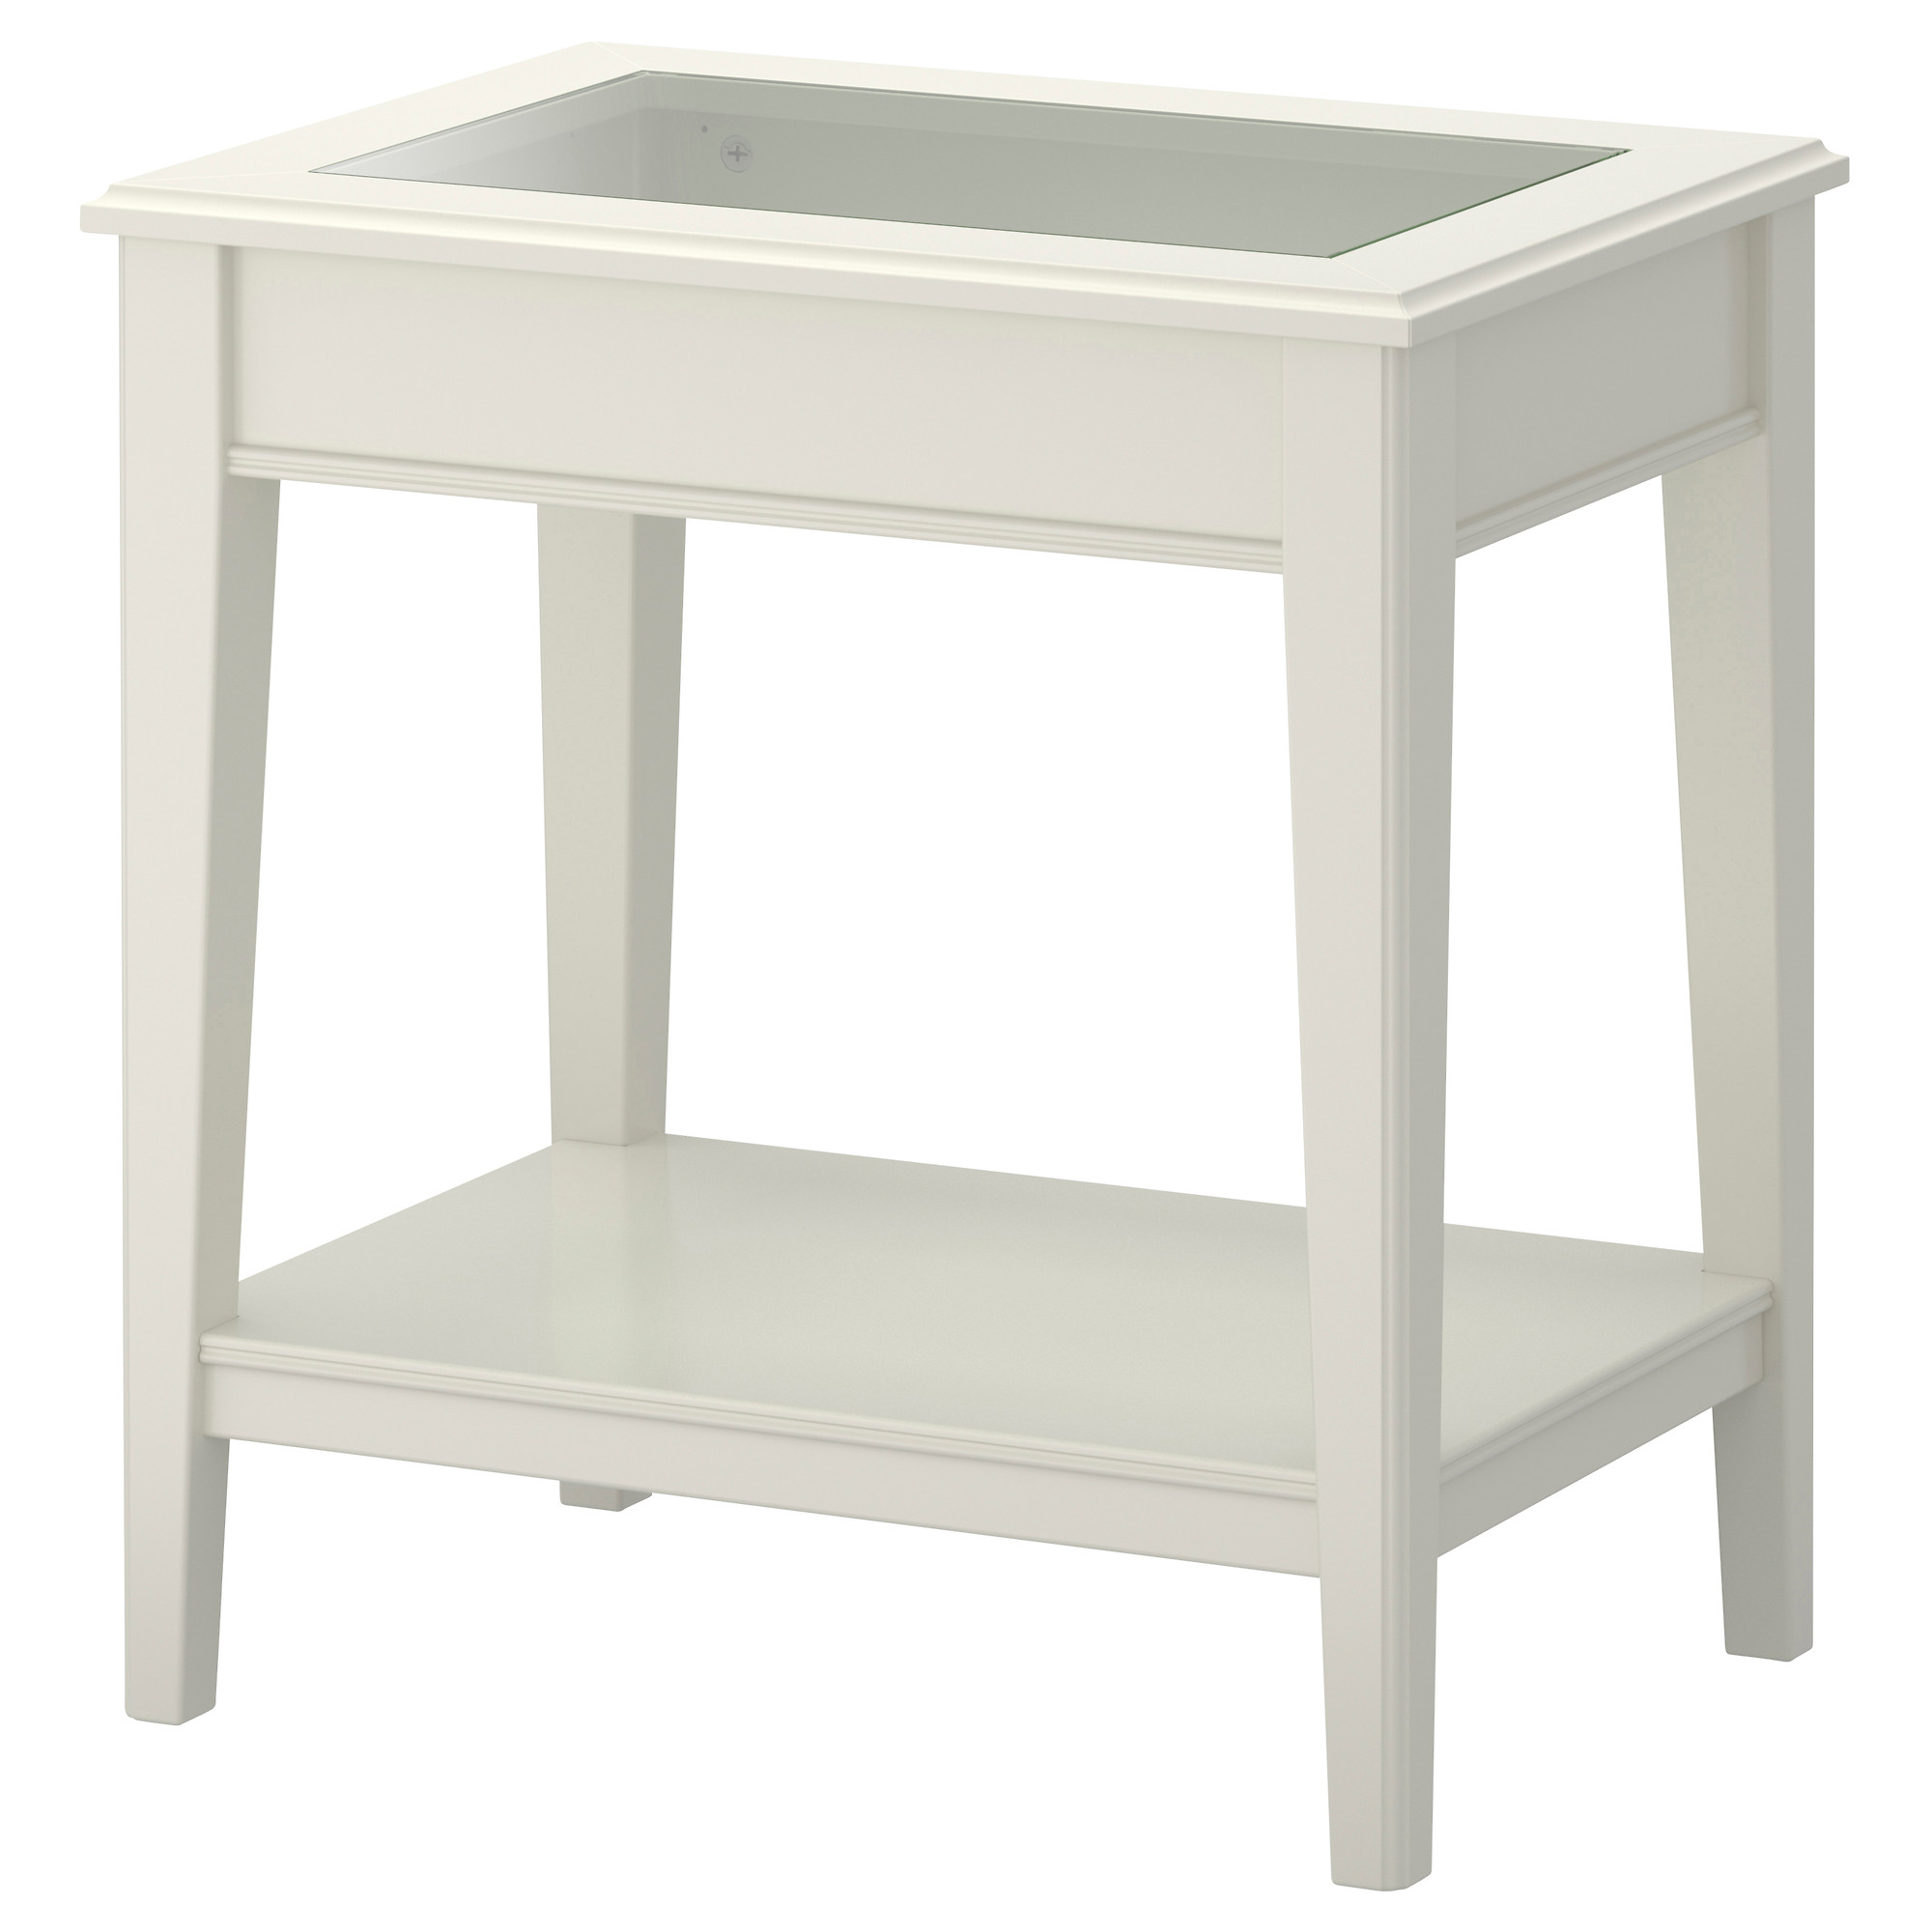 Liatorp Side Table.Liatorp